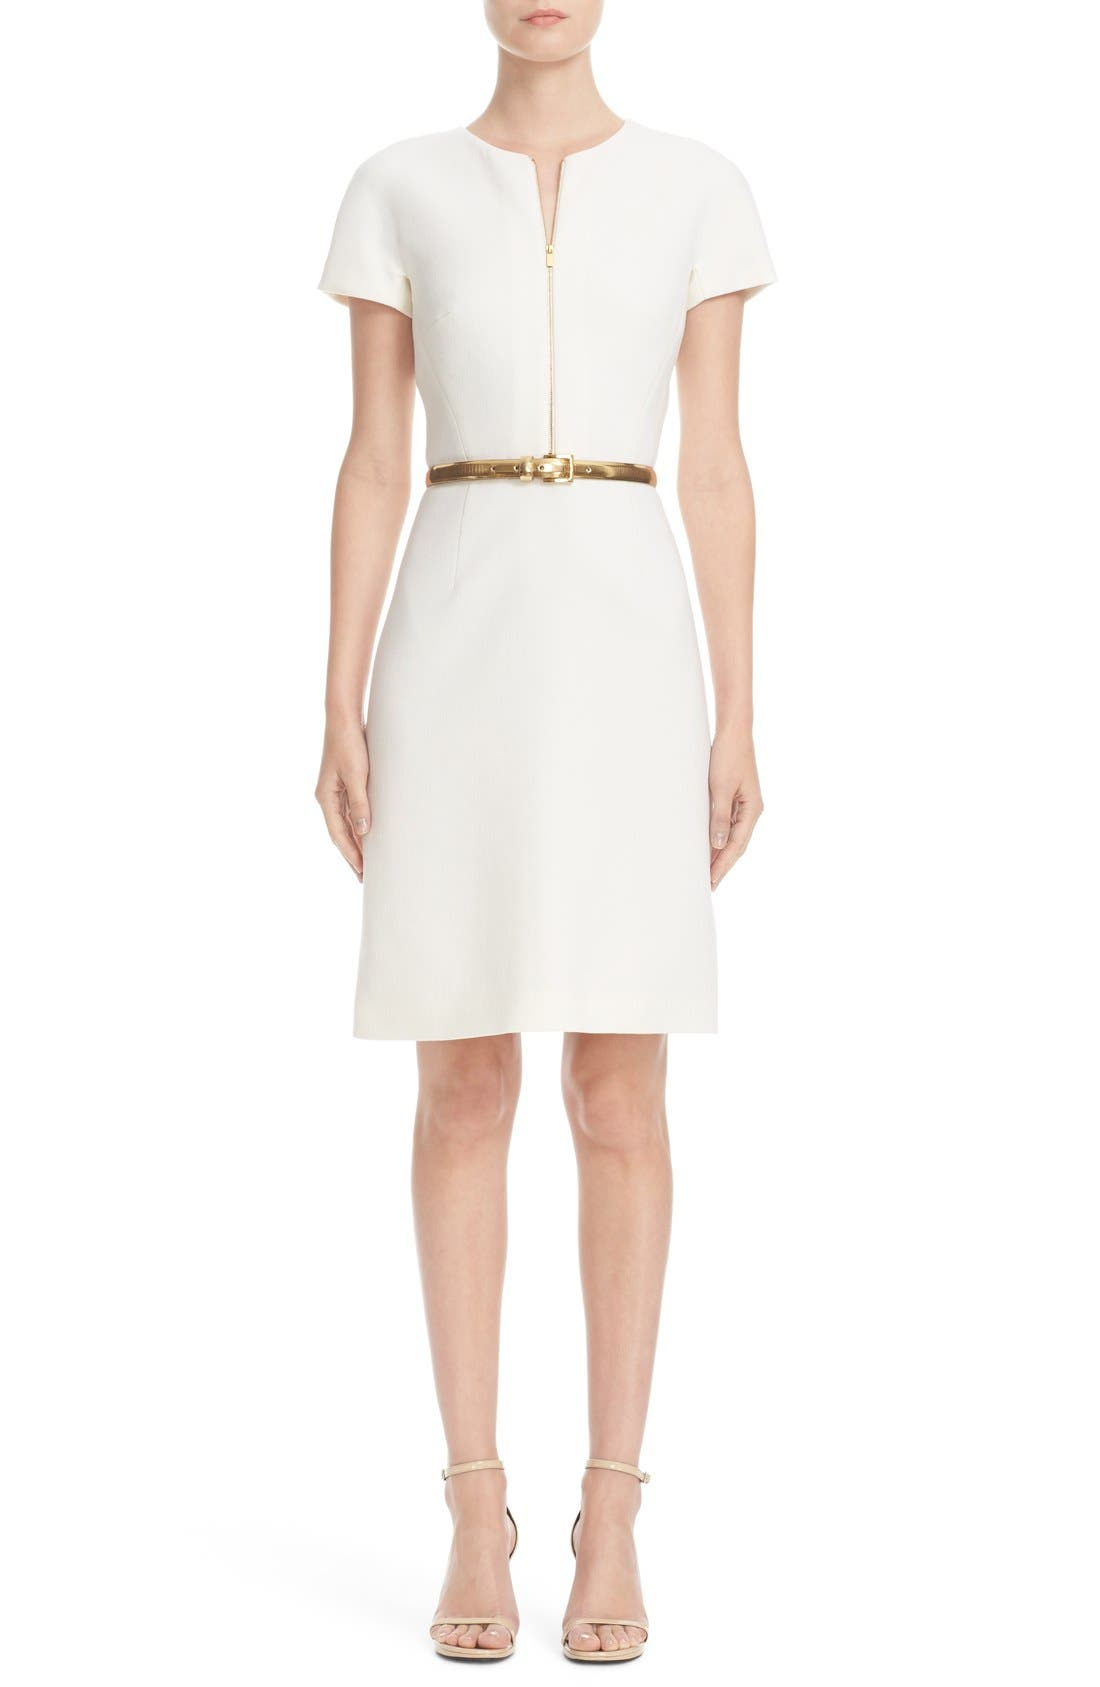 Alternate Image 1 Selected - Michael Kors Stretch Wool Crepe Dress